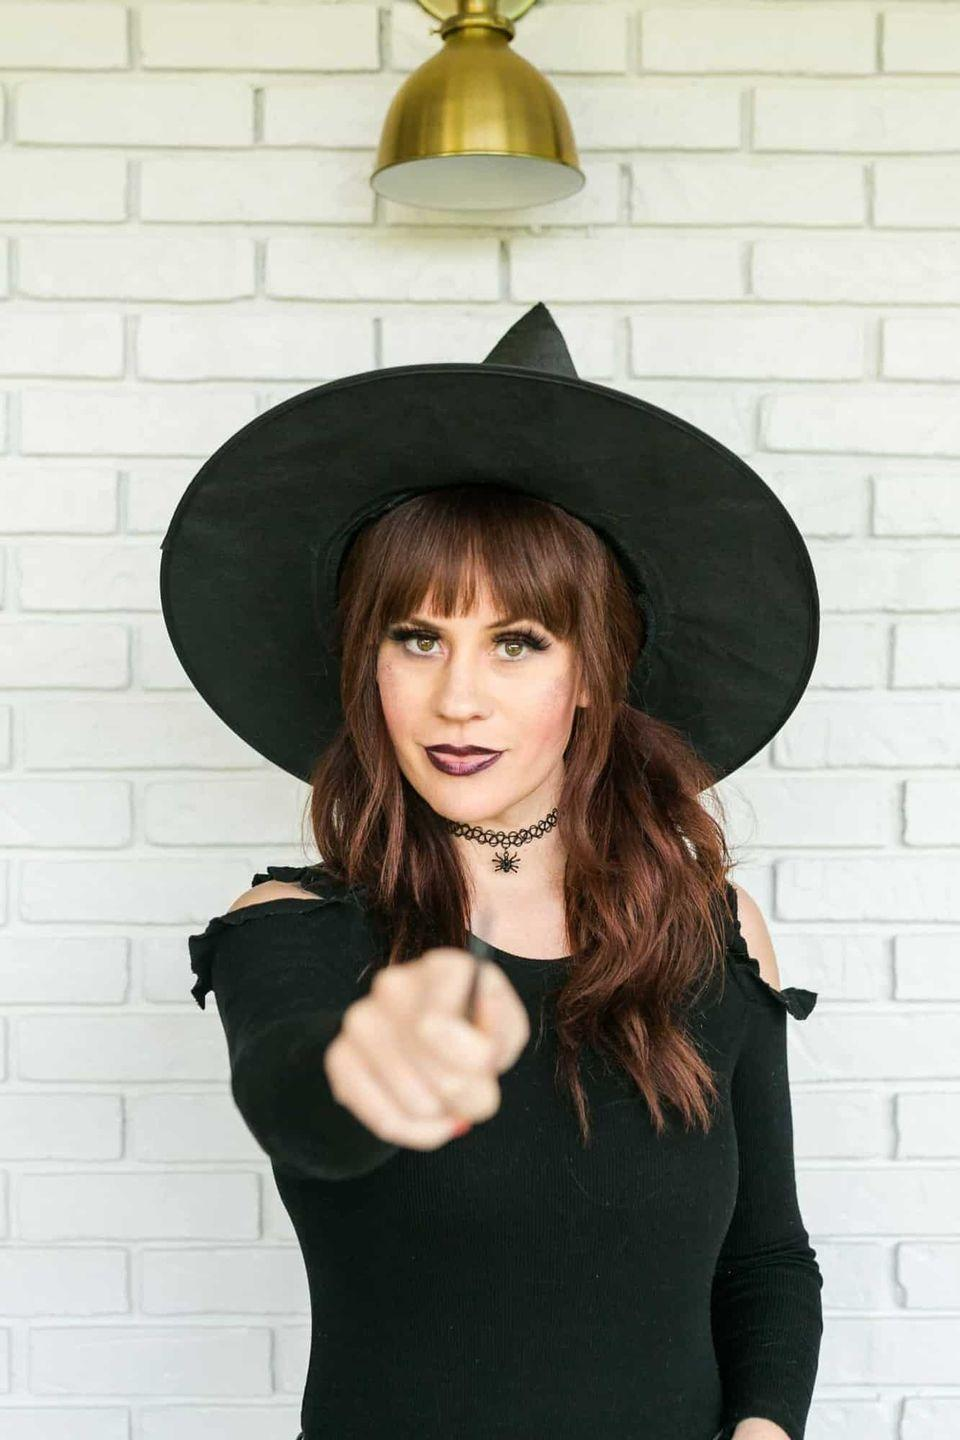 """<p>Not quite scary and not quite sweet, this simple DIY witch costume falls somewhere in the middle. Just pair whatever black ensemble you have in your closet with a black chocker and a witch hat. And don't forget to don a little dark makeup. </p><p><a class=""""link rapid-noclick-resp"""" href=""""https://www.amazon.com/Leg-Avenue-Womens-Large-Ruched/dp/B00JSJSTK2/?tag=syn-yahoo-20&ascsubtag=%5Bartid%7C10072.g.33534666%5Bsrc%7Cyahoo-us"""" rel=""""nofollow noopener"""" target=""""_blank"""" data-ylk=""""slk:SHOP WITCH HAT"""">SHOP WITCH HAT</a></p><p><a class=""""link rapid-noclick-resp"""" href=""""https://www.amazon.com/Urchart-Halloween-Necklace-Hallowmas-Accessory/dp/B07CTBT6Z5/?tag=syn-yahoo-20&ascsubtag=%5Bartid%7C10072.g.33534666%5Bsrc%7Cyahoo-us"""" rel=""""nofollow noopener"""" target=""""_blank"""" data-ylk=""""slk:SHOP SPIDER CHOKER"""">SHOP SPIDER CHOKER</a></p><p><a class=""""link rapid-noclick-resp"""" href=""""https://www.amazon.com/HAOMEILI-Vestido-hombros-descubiertos-bolsillos/dp/B074QP6N3P/?tag=syn-yahoo-20&ascsubtag=%5Bartid%7C10072.g.33534666%5Bsrc%7Cyahoo-us"""" rel=""""nofollow noopener"""" target=""""_blank"""" data-ylk=""""slk:SHOP BLACK DRESS"""">SHOP BLACK DRESS</a></p>"""